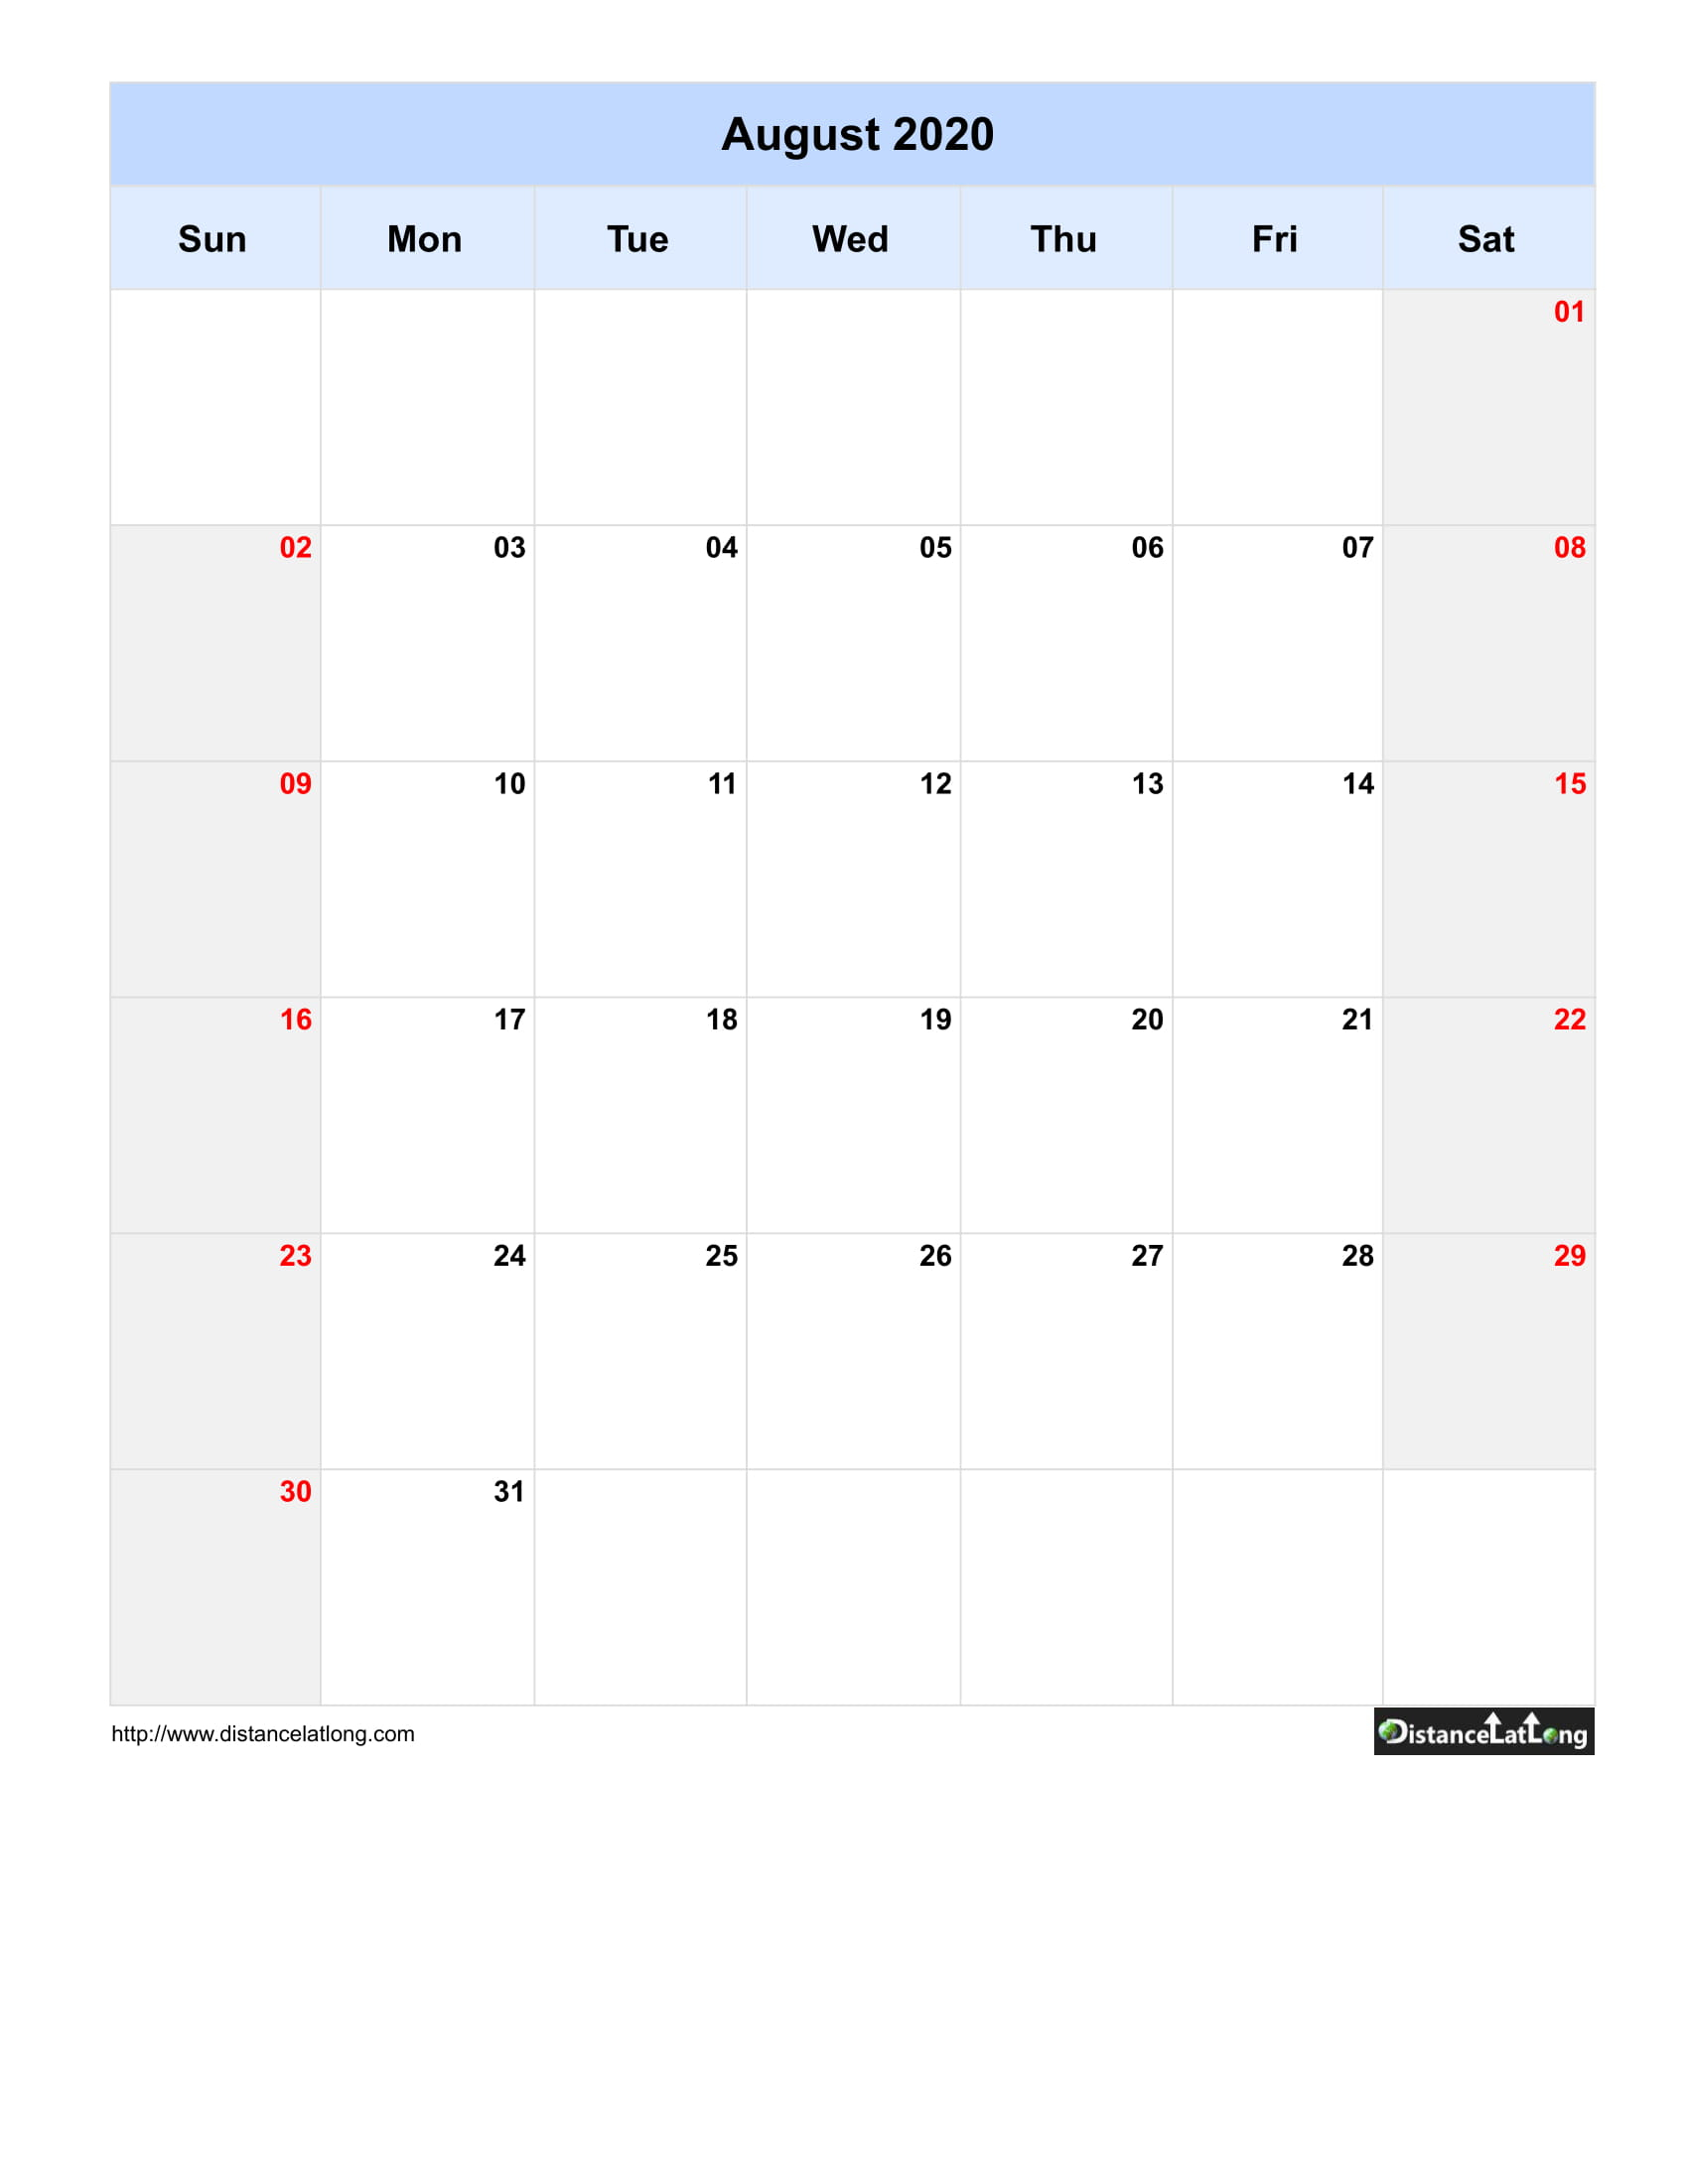 August Calendars For Pdf, Words And Jpg Formats